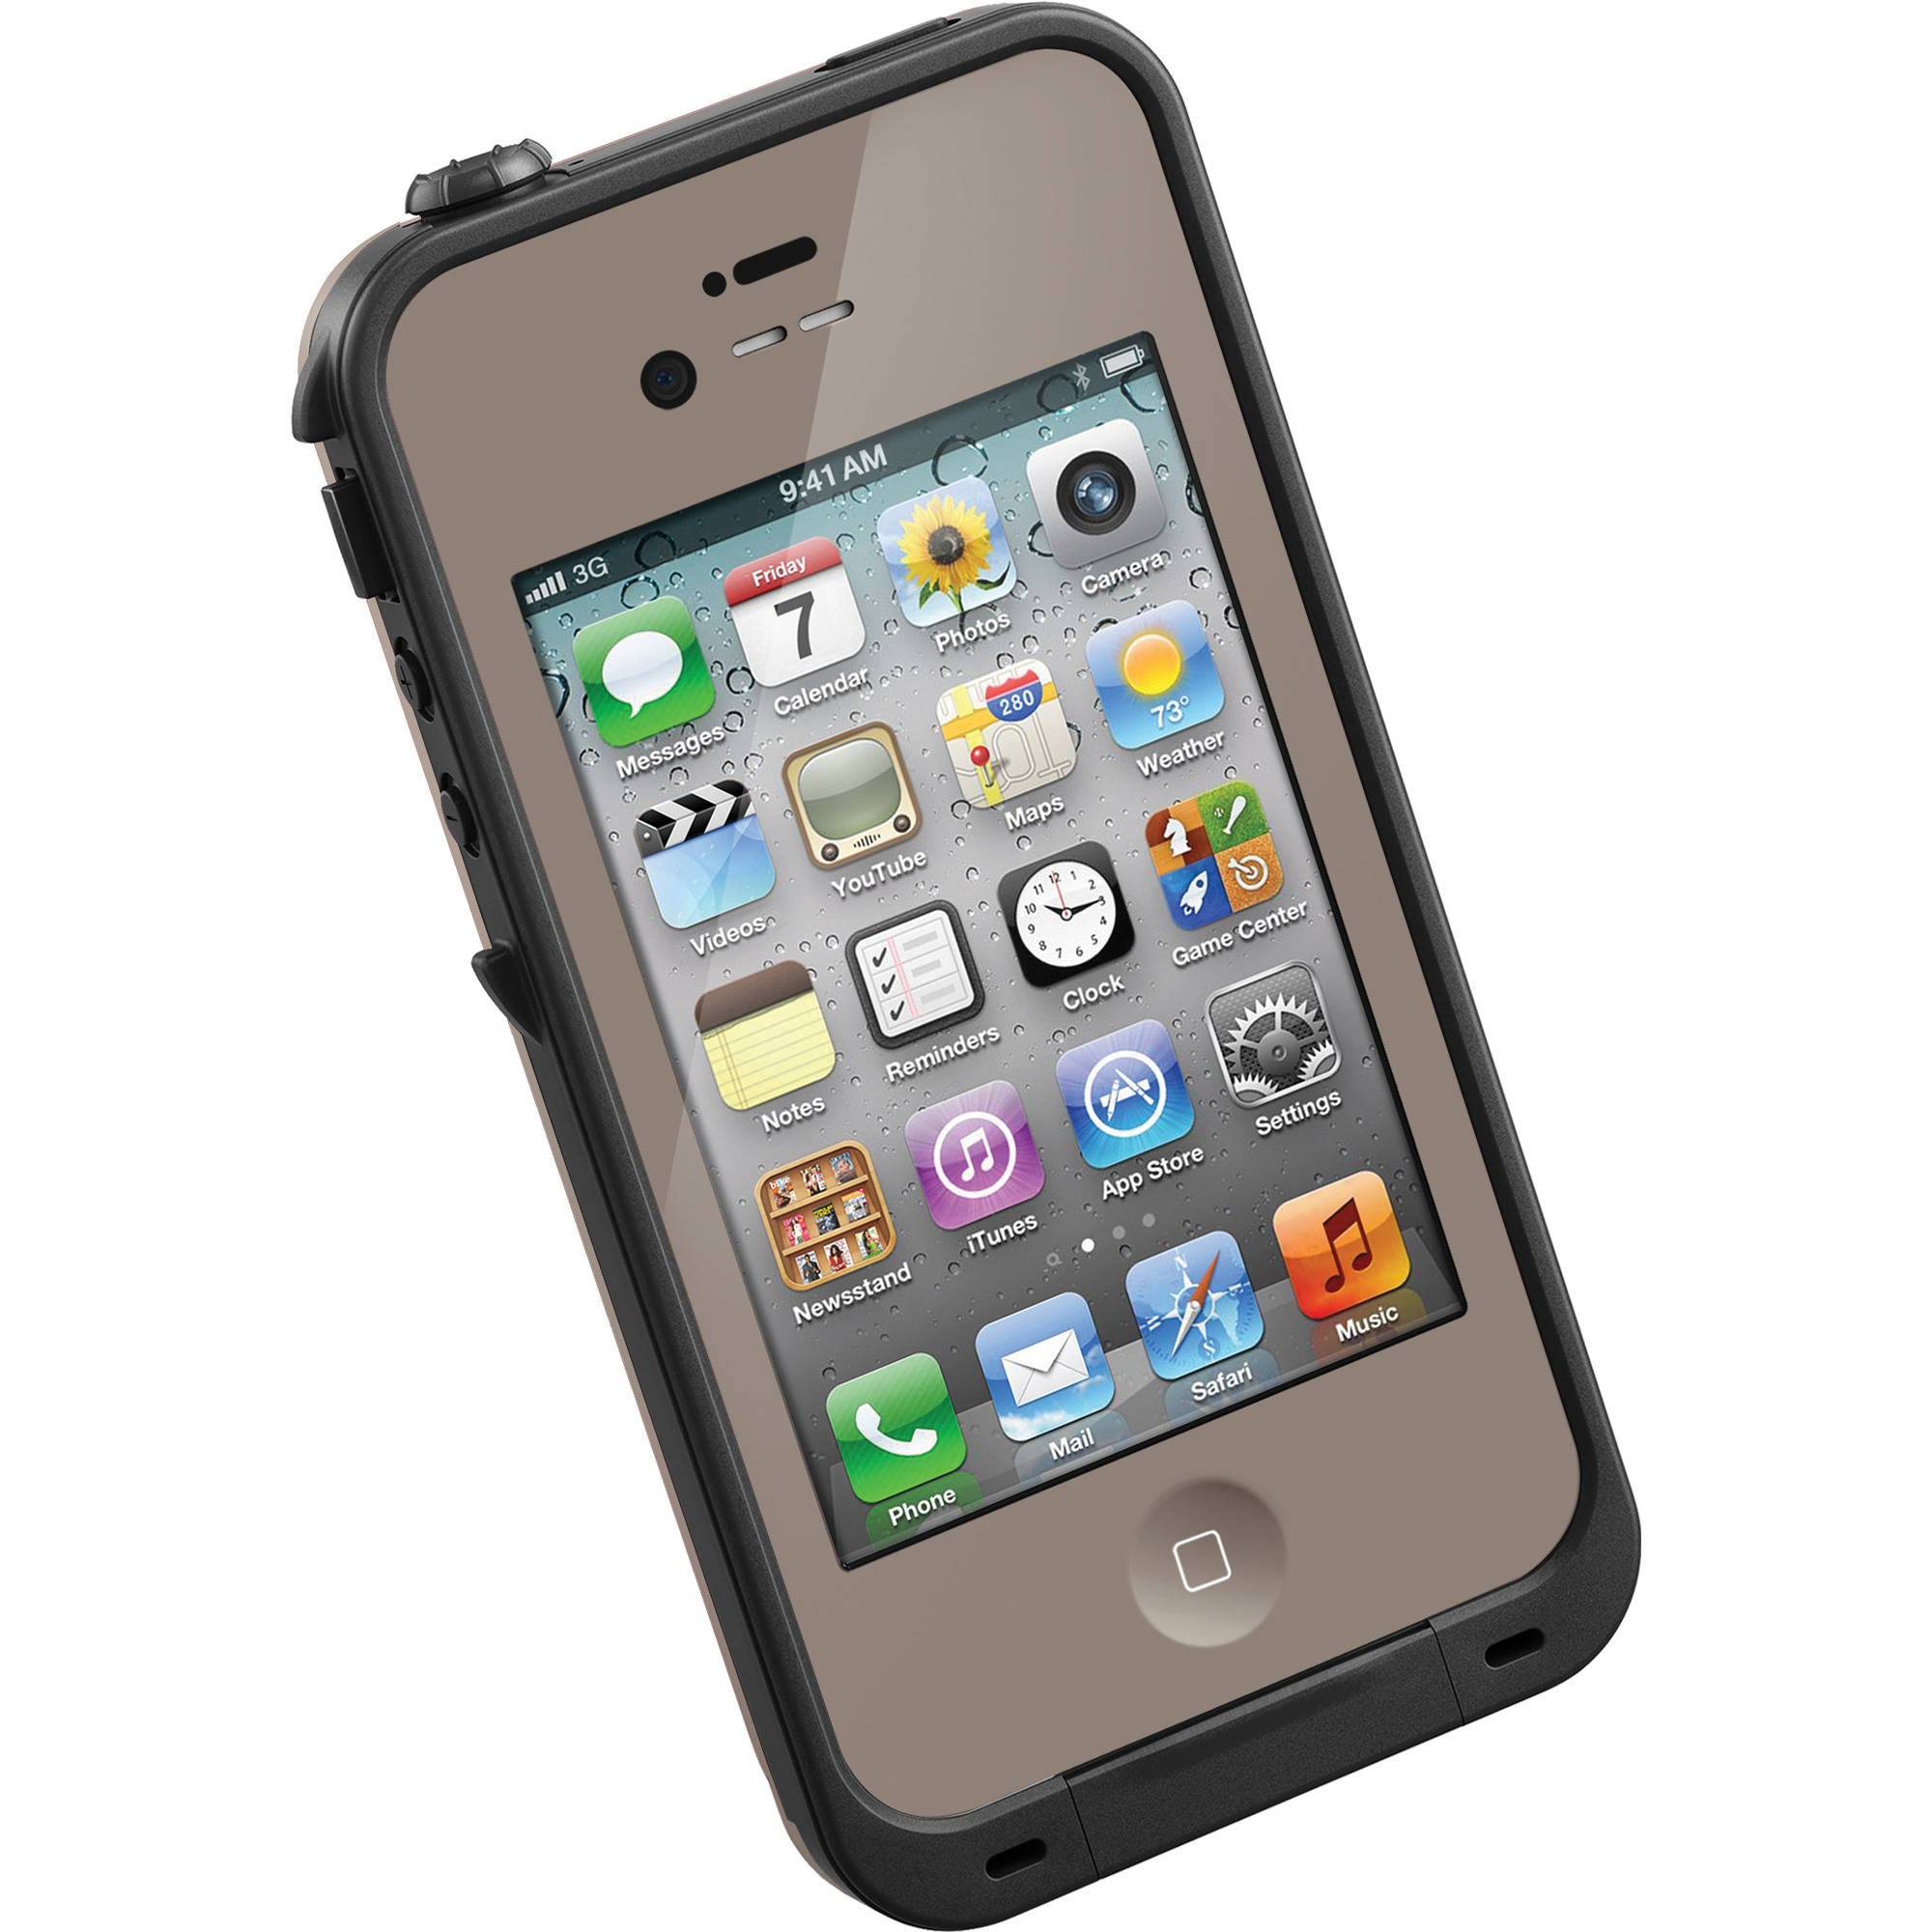 lifeproof case for iphone 4 lifeproof for iphone 4 4s flat earth 1001 10 b amp h 17771